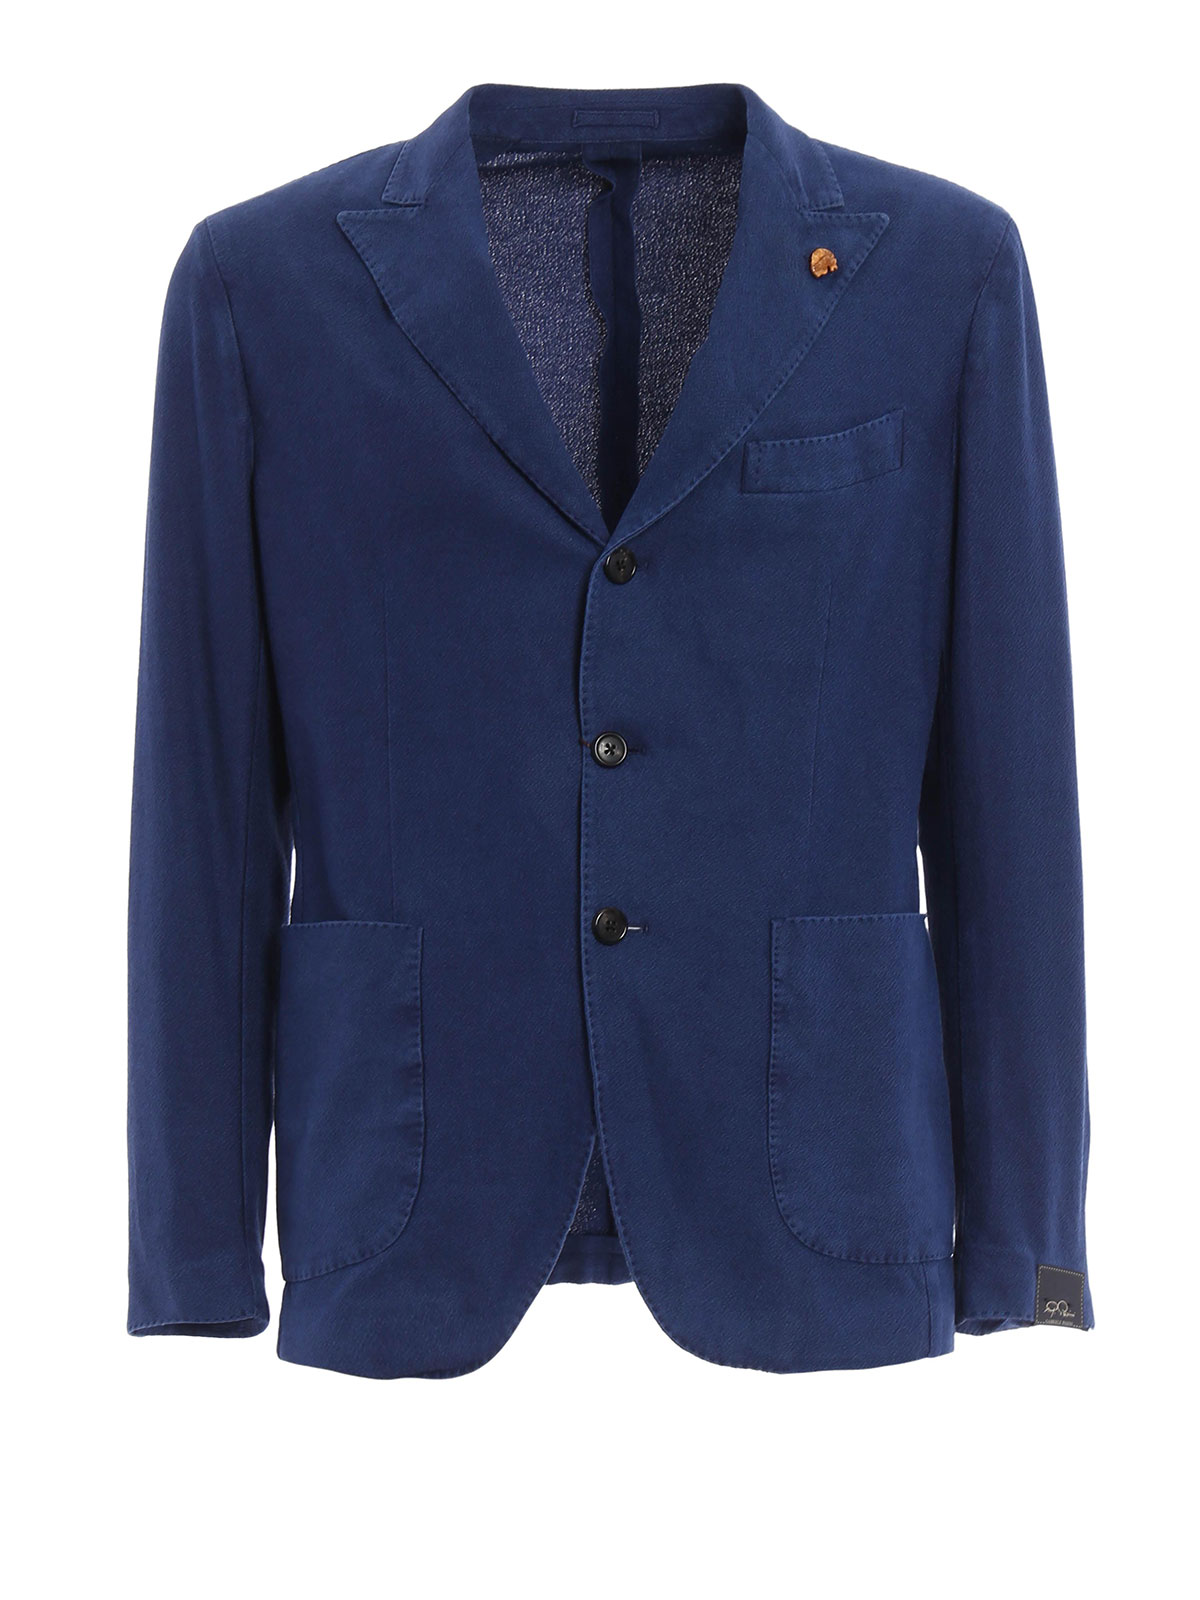 View Cotton Trader's range of women's blazers and jersey jackets to find a style that suits you. Choose your favourite designs and order online today.